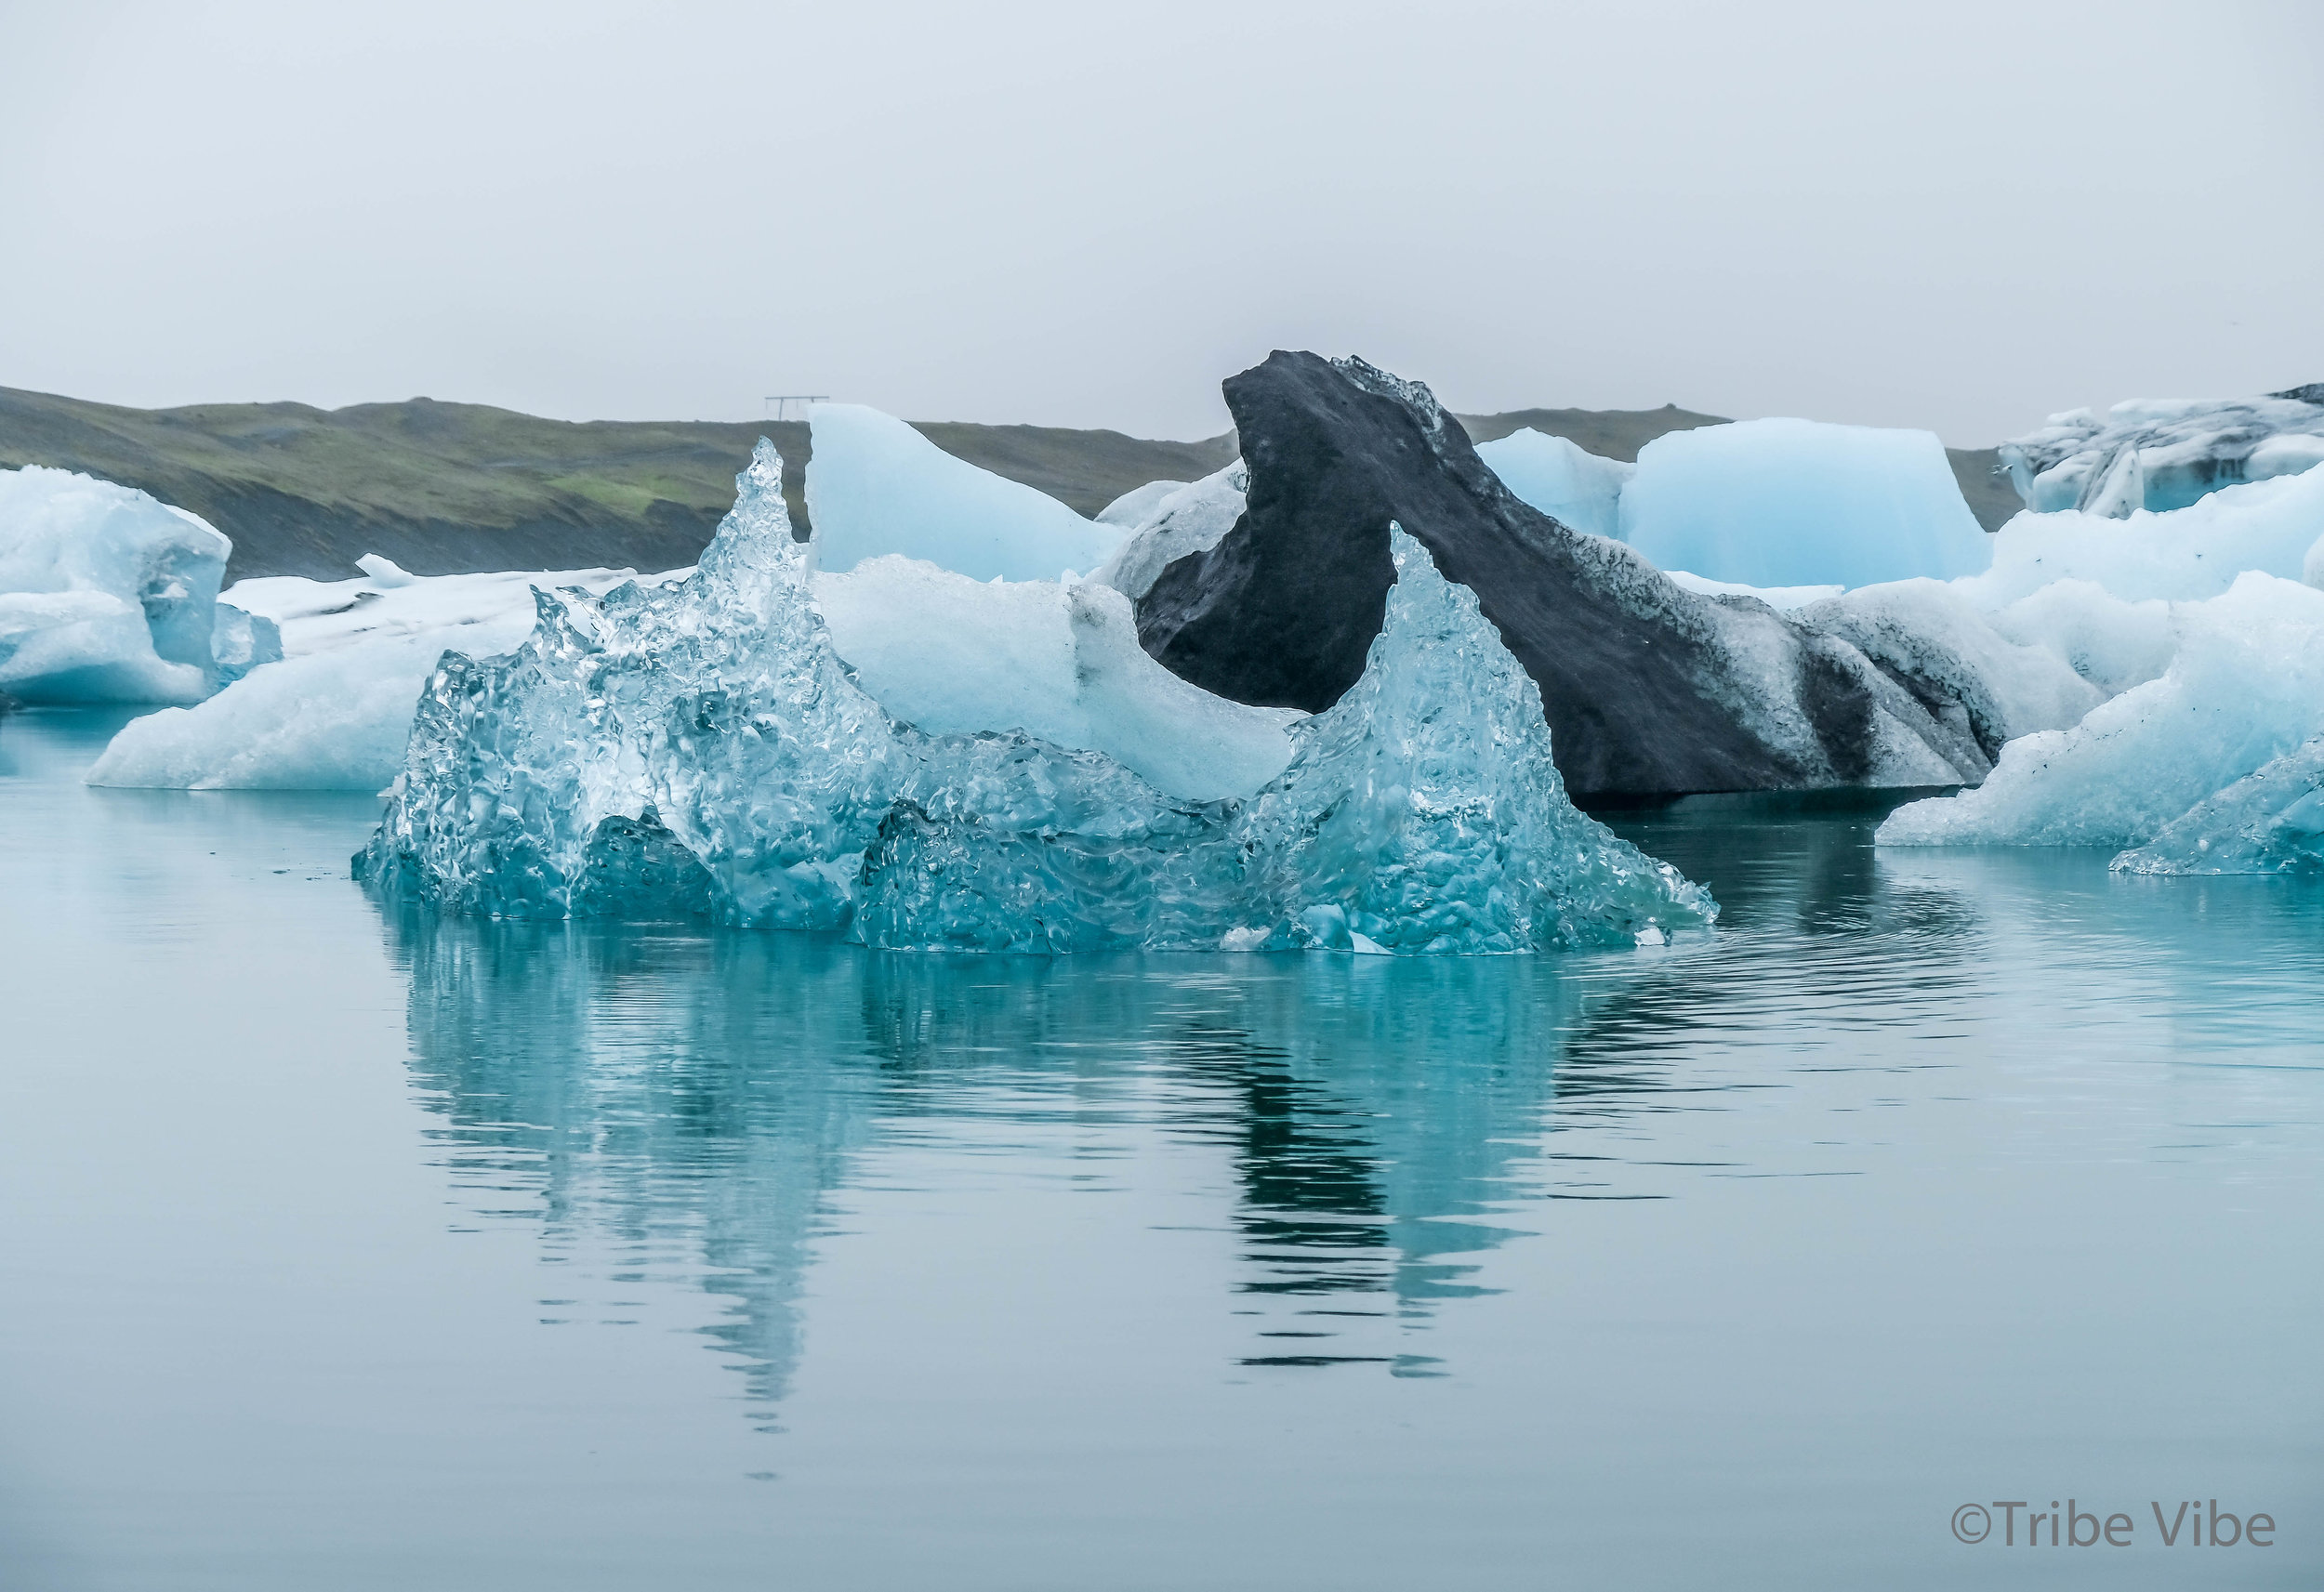 Beautiful formations at Jokularson Glacier Lagoon